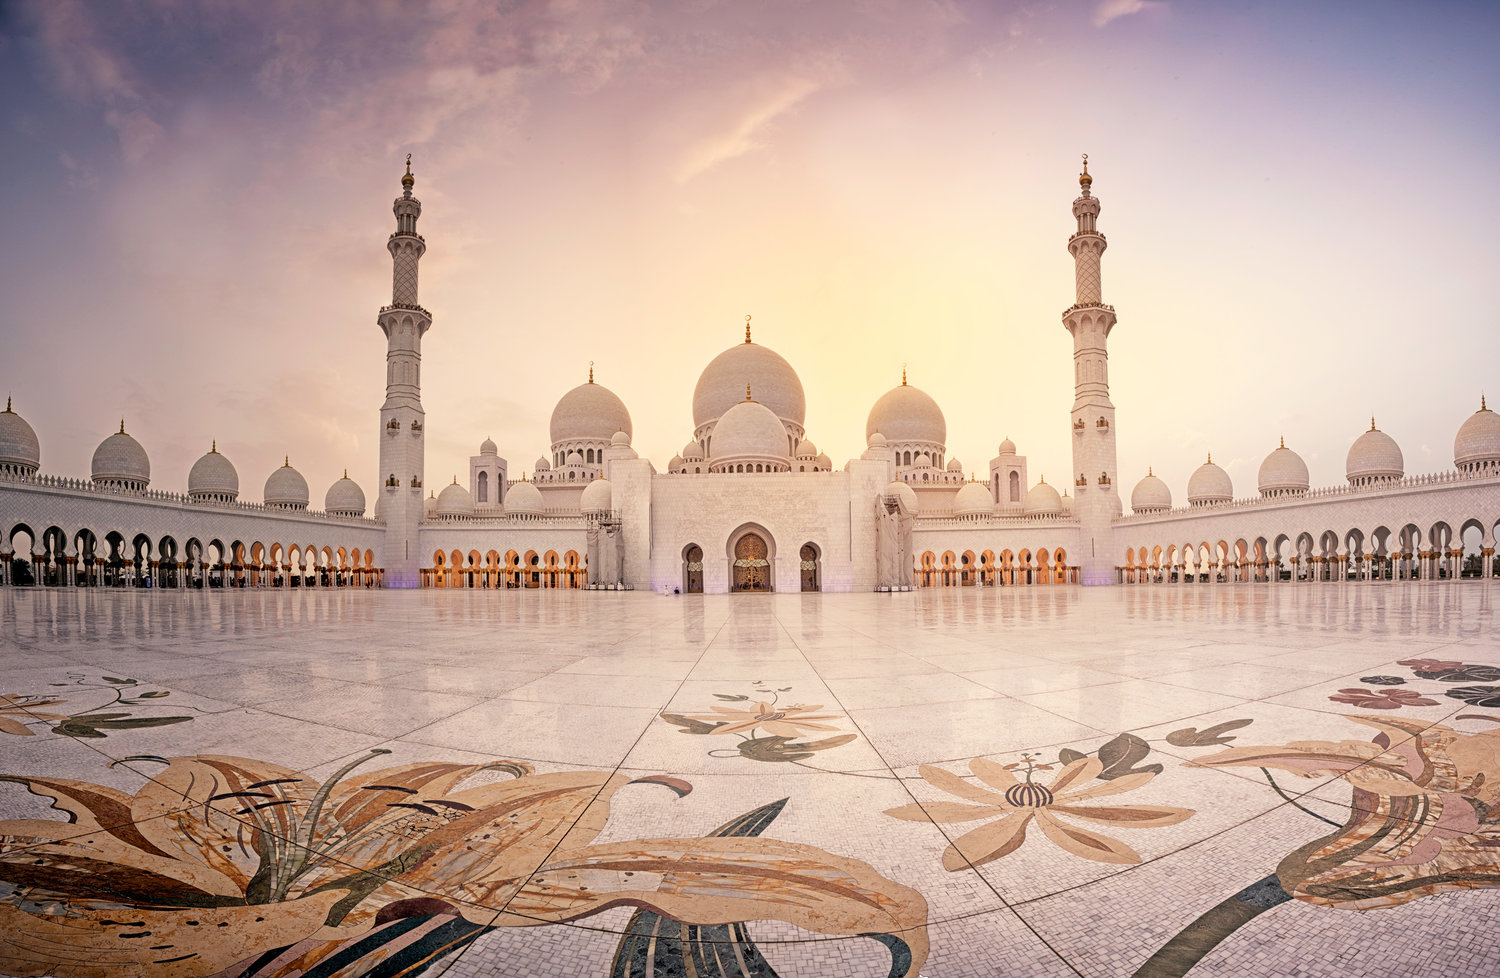 Sheikh Zayed Grand Mosque by Antoine Buchet